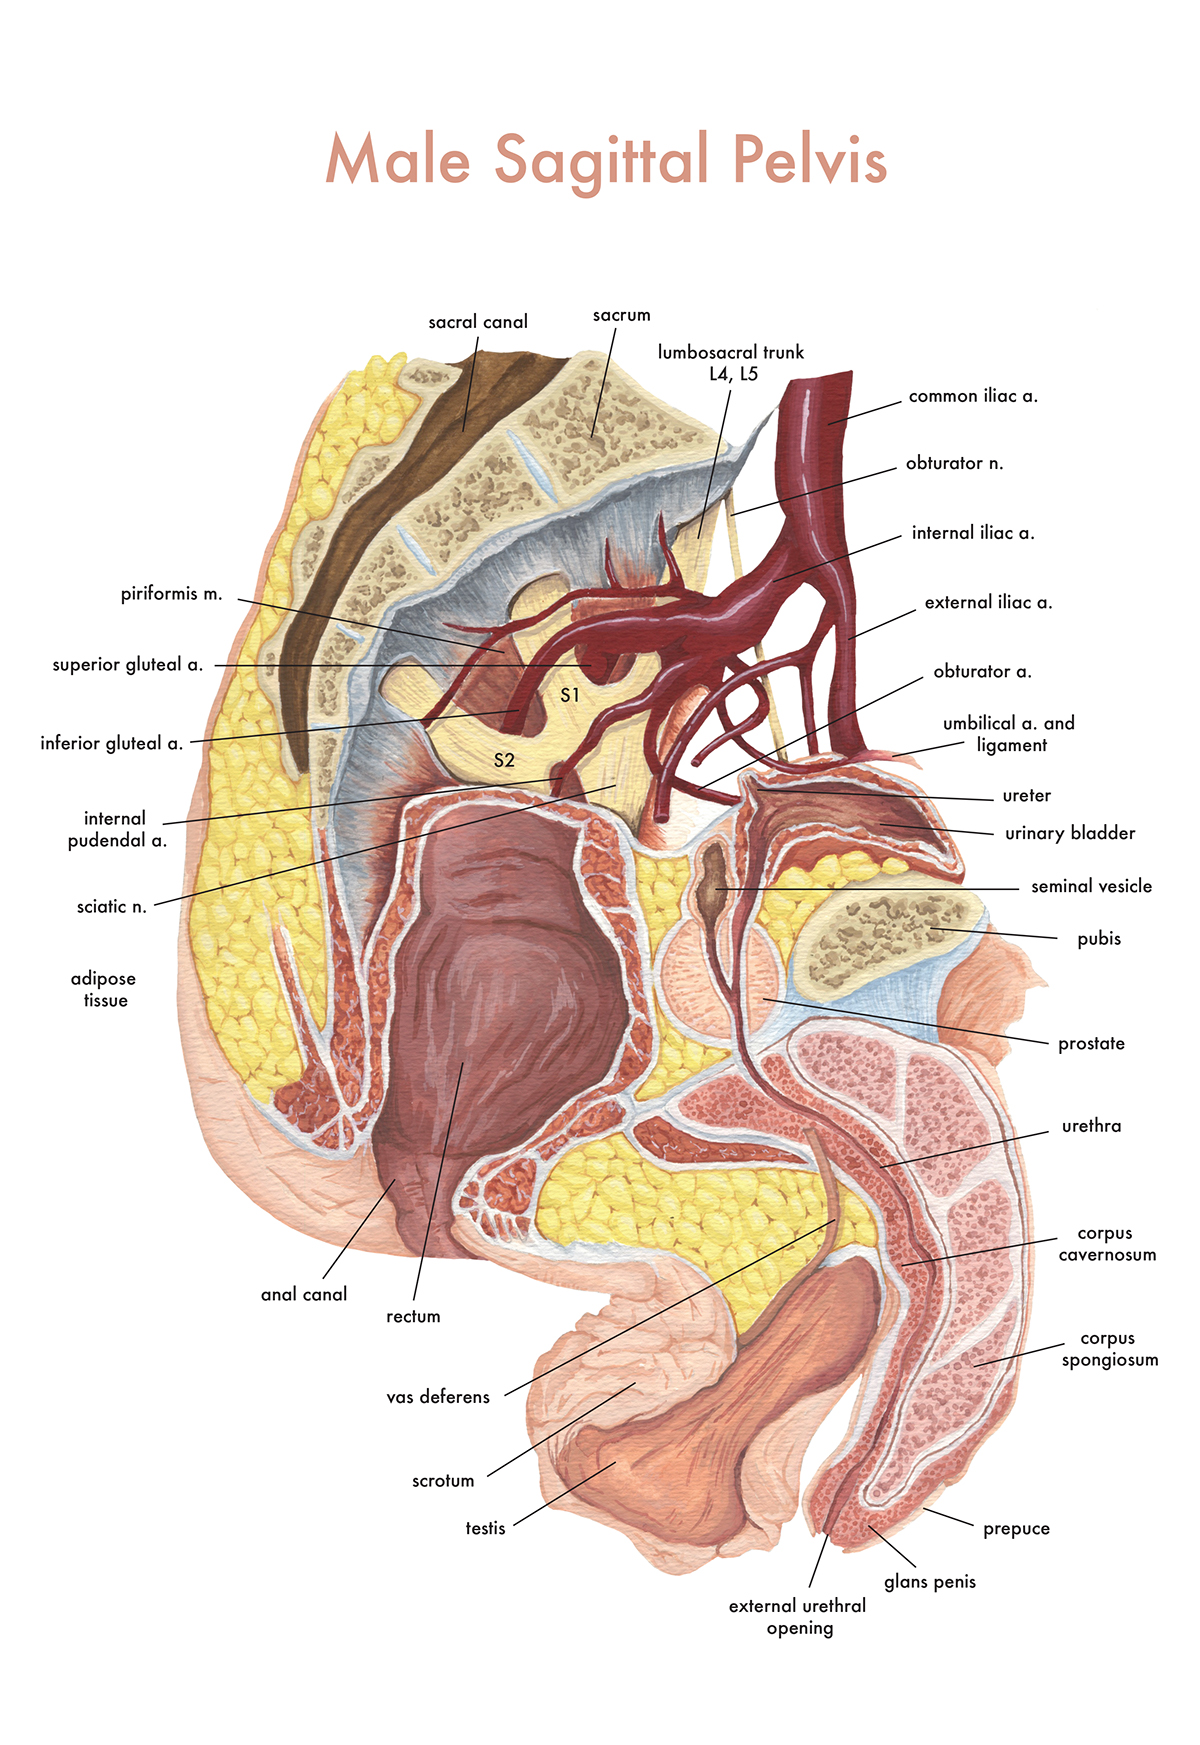 as part of my medical illustration education, i had the privilege of taking  a gross anatomy course including human dissection